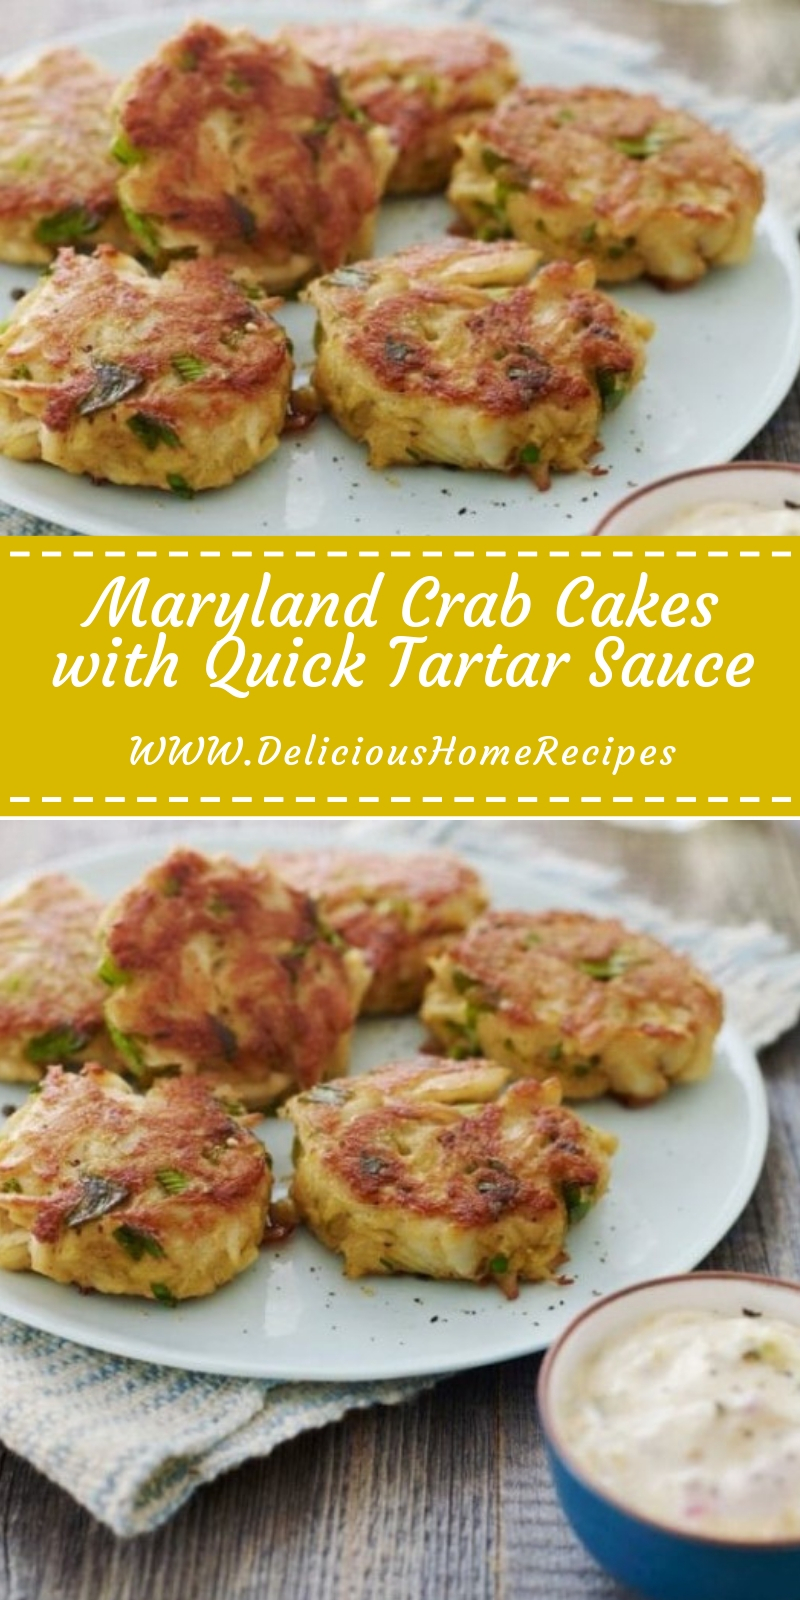 Maryland Crab Cakes with Quick Tartar Sauce #christmas #dinner